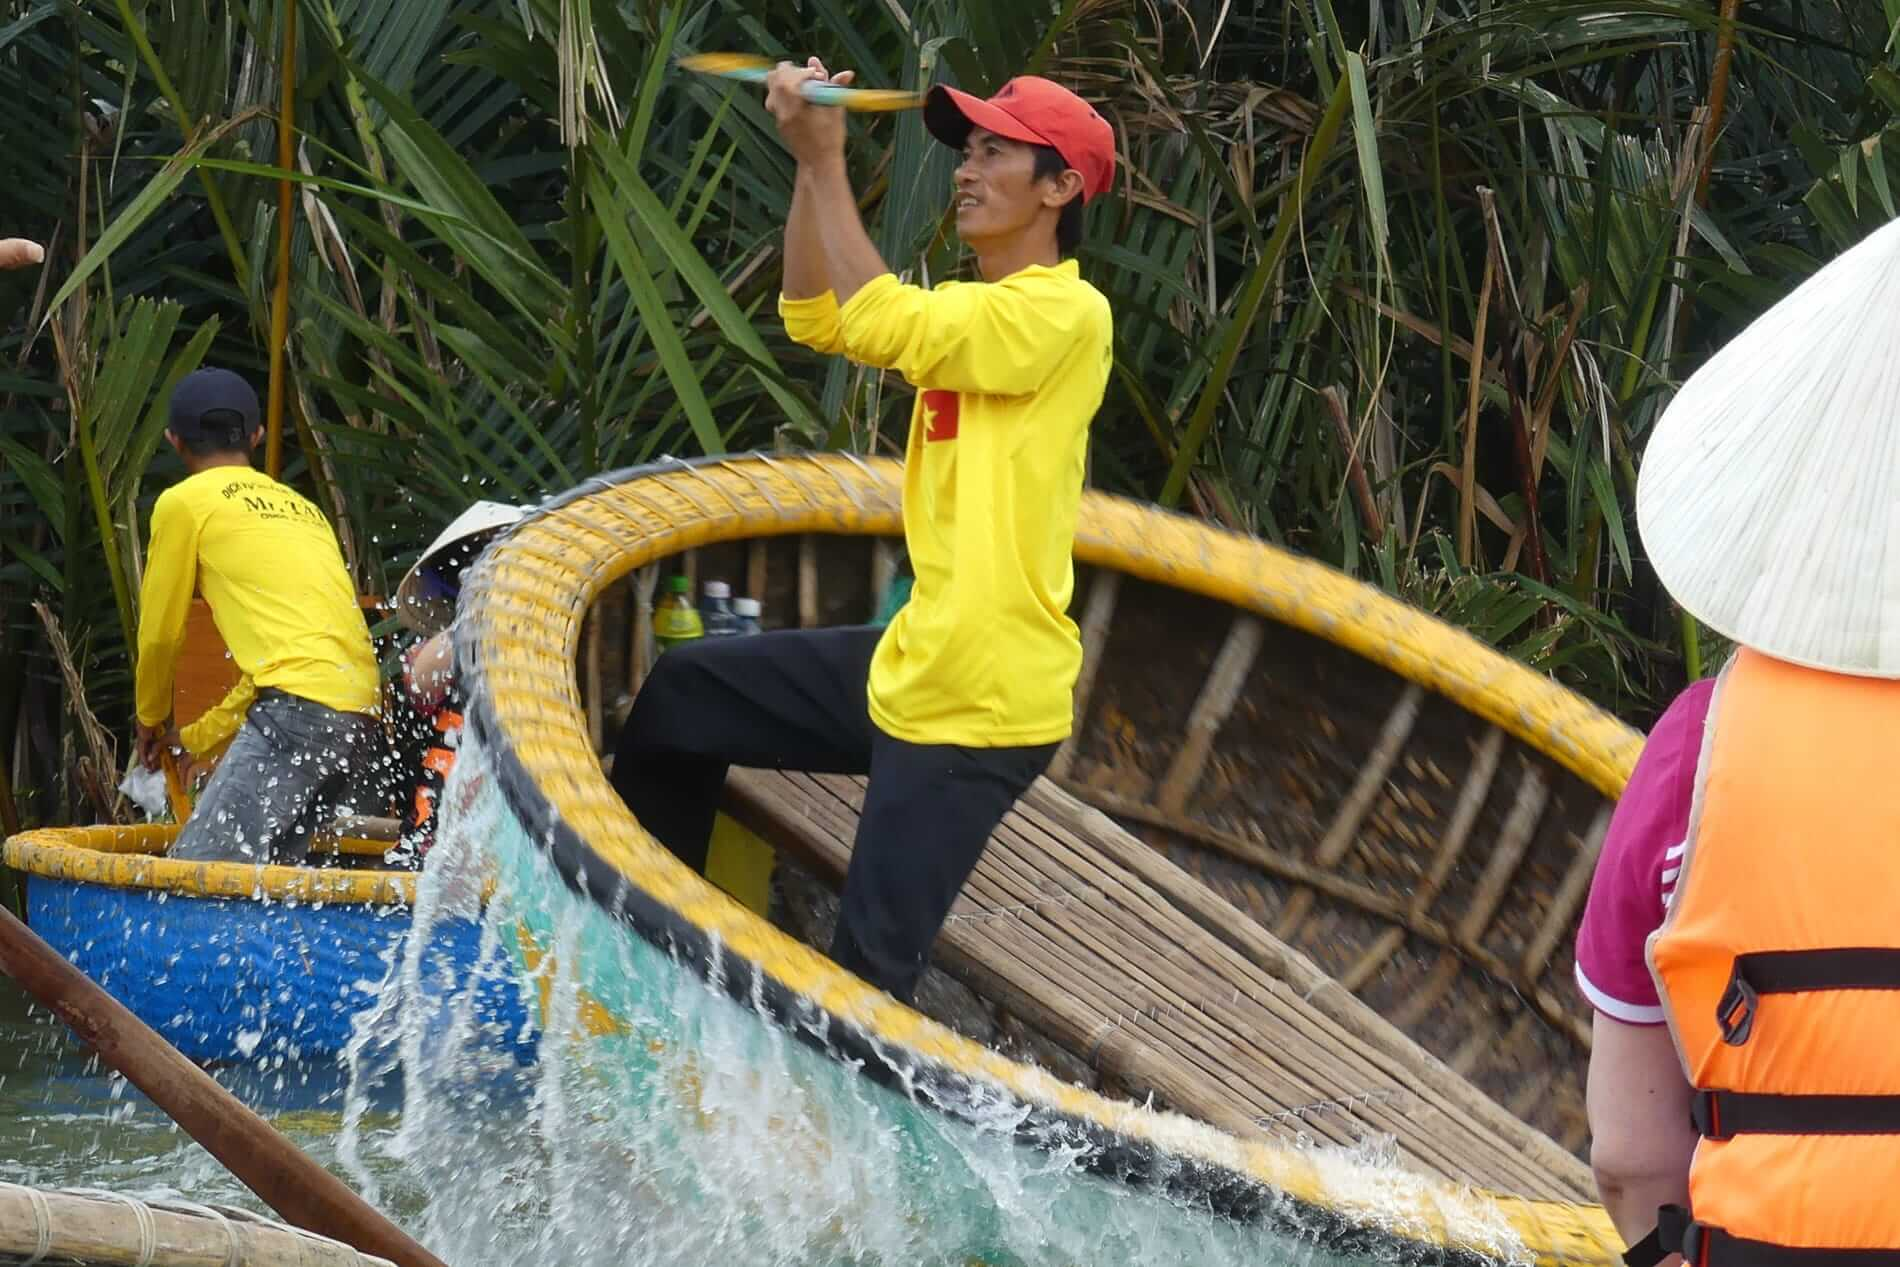 Spinning a bamboo boat to entertain visitors